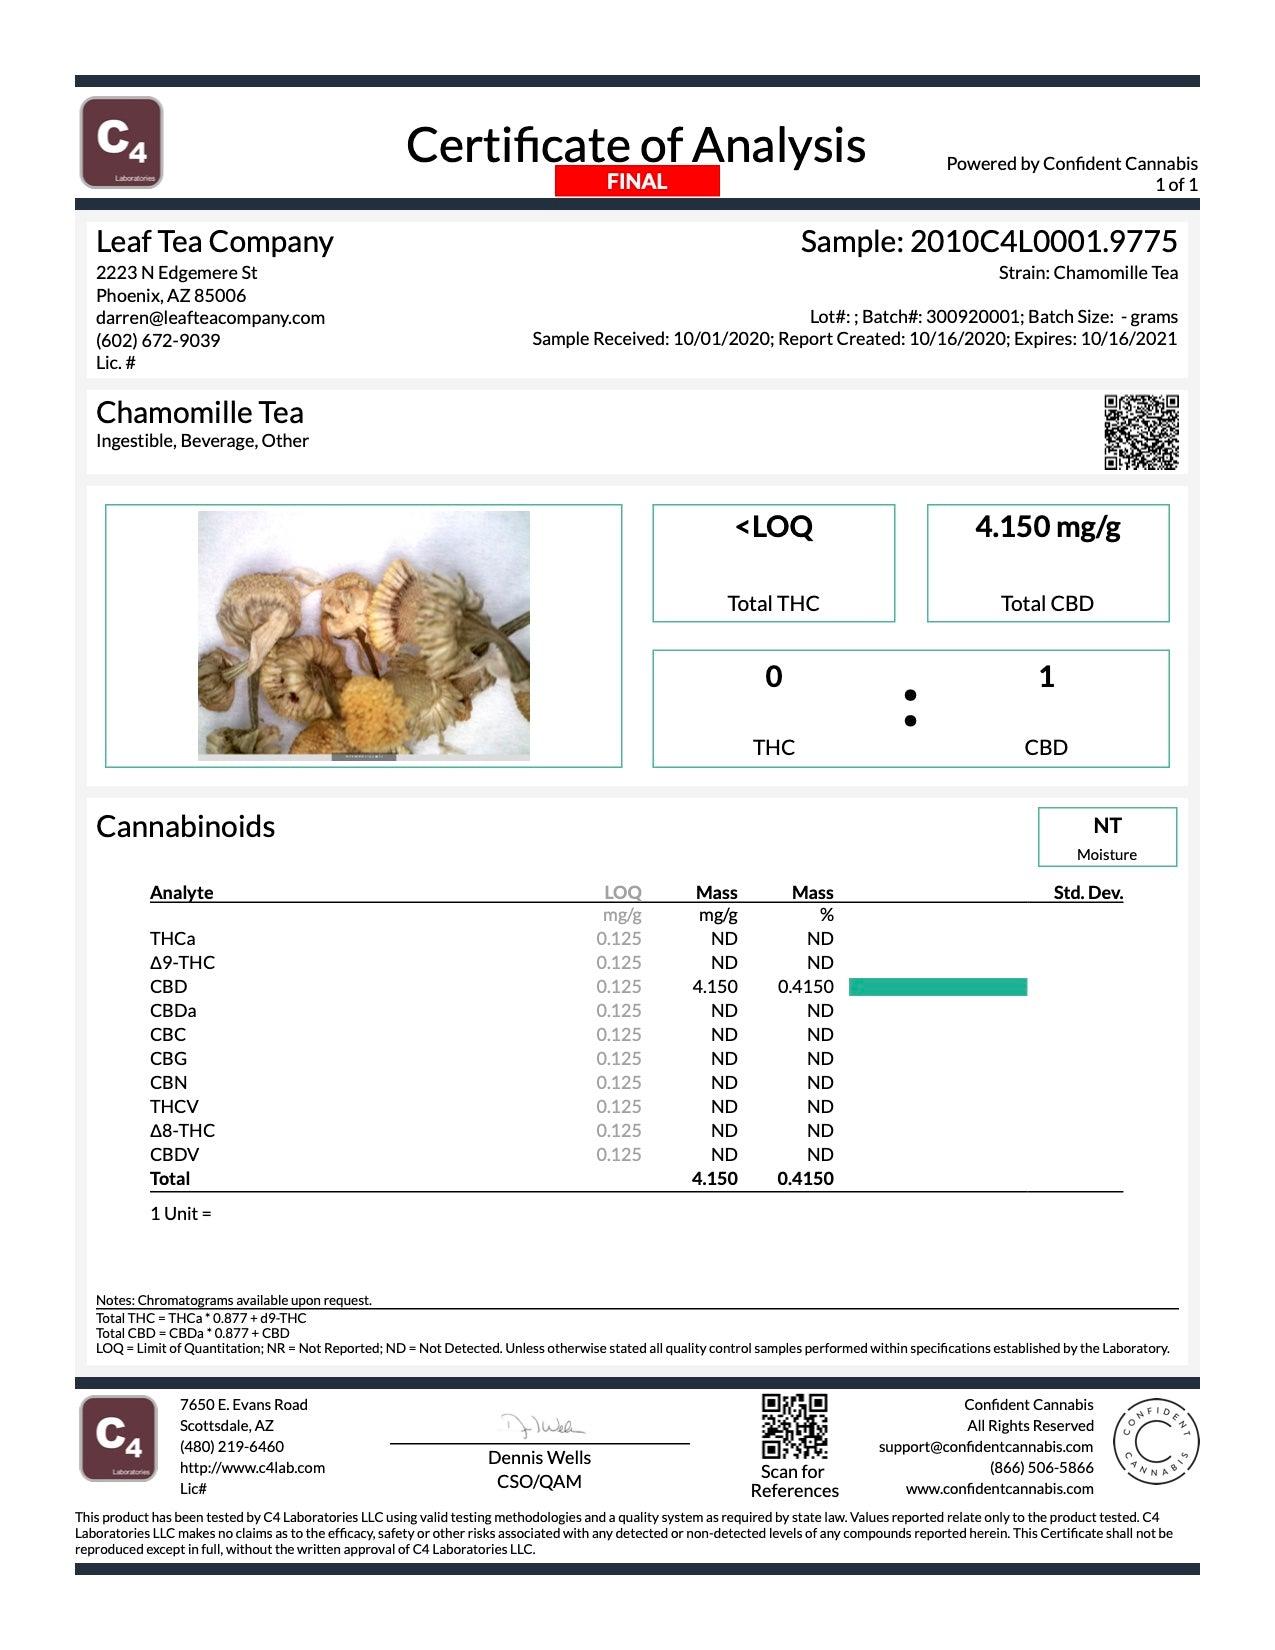 Chamomile CBD Tea Batch 300920001 - COA - Test Results | Leaf Tea Company